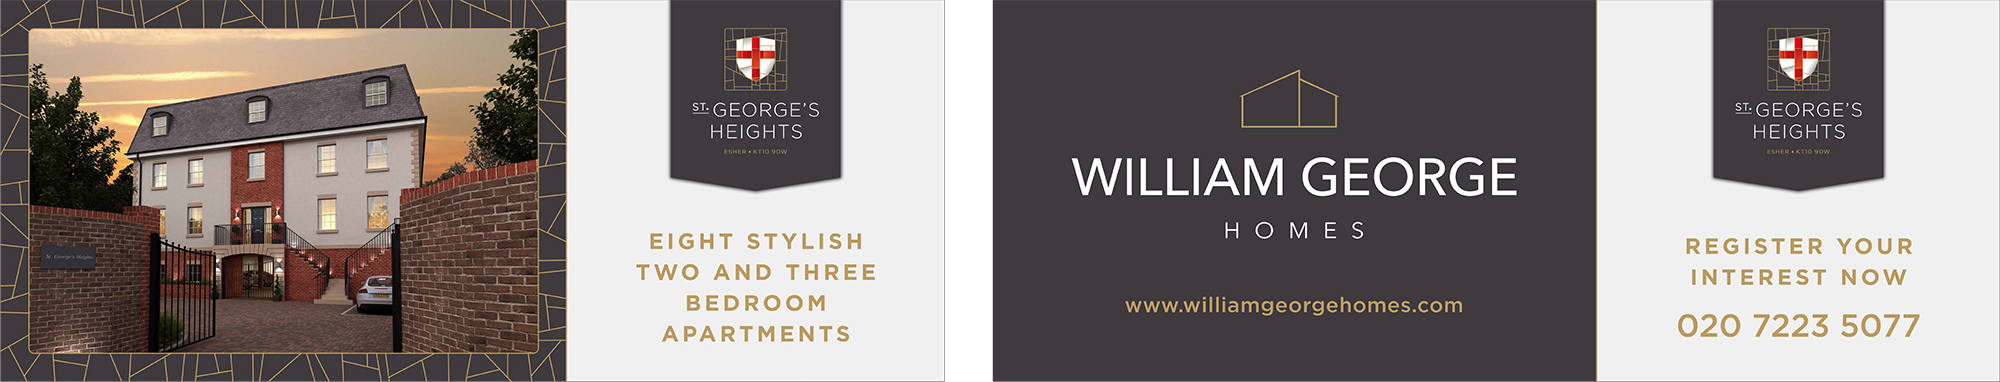 WILLIAM GEORGE HOMES